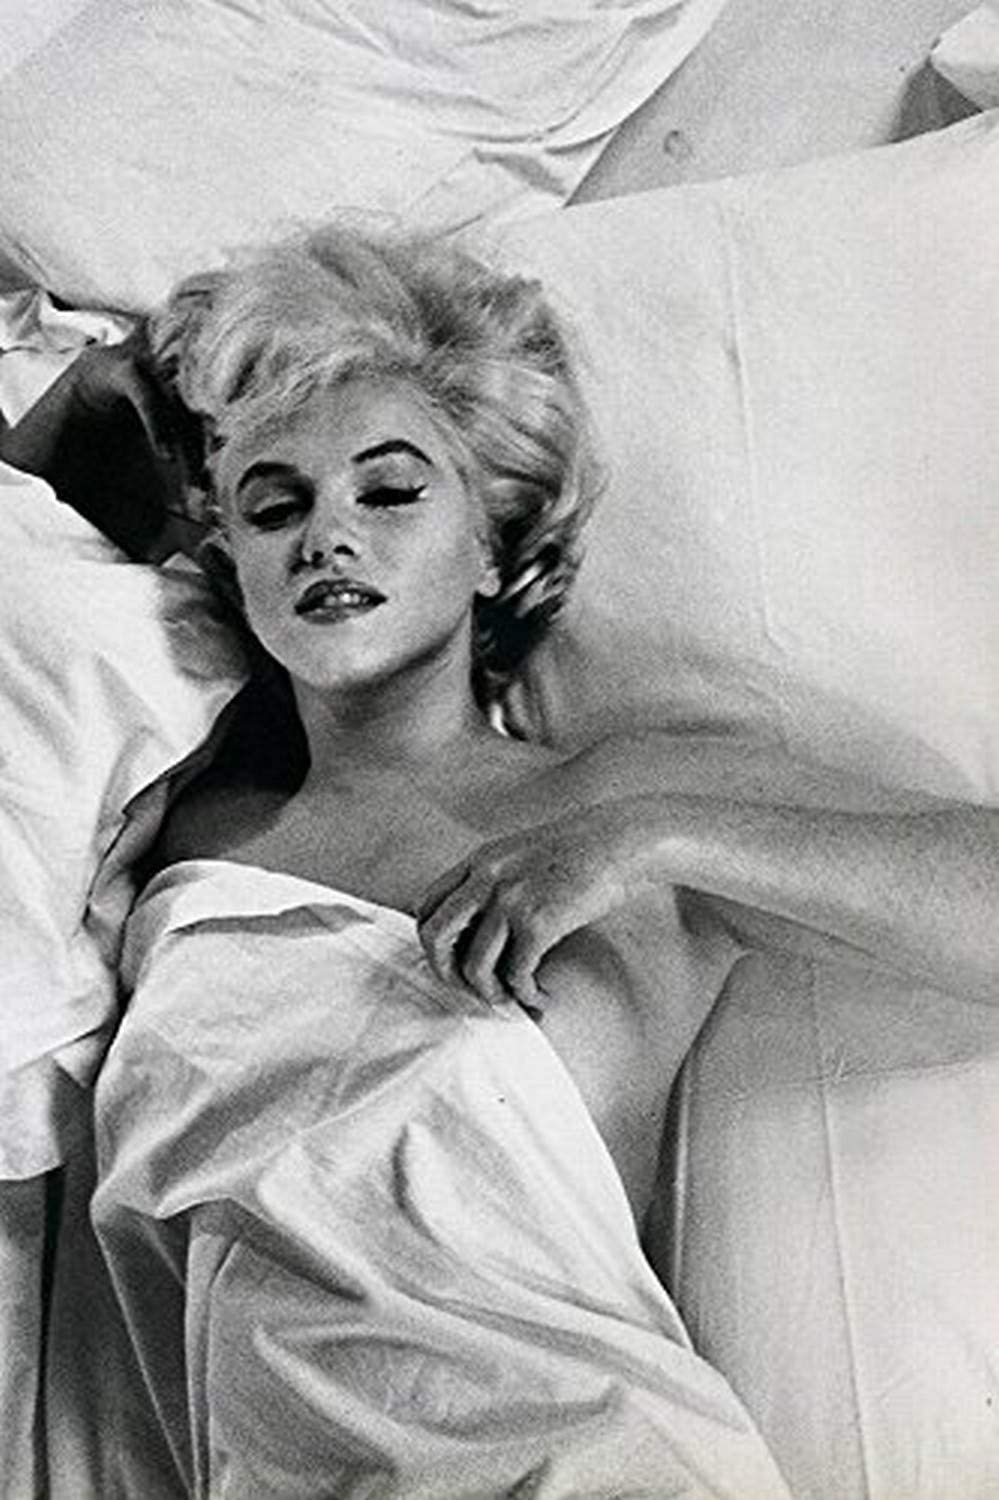 Amazon Com Buyartforless Rare Photograph Of Marilyn Monroe Hot Mess In Bed 12x18 Art Printed Poster Made In The Usa Posters Prints